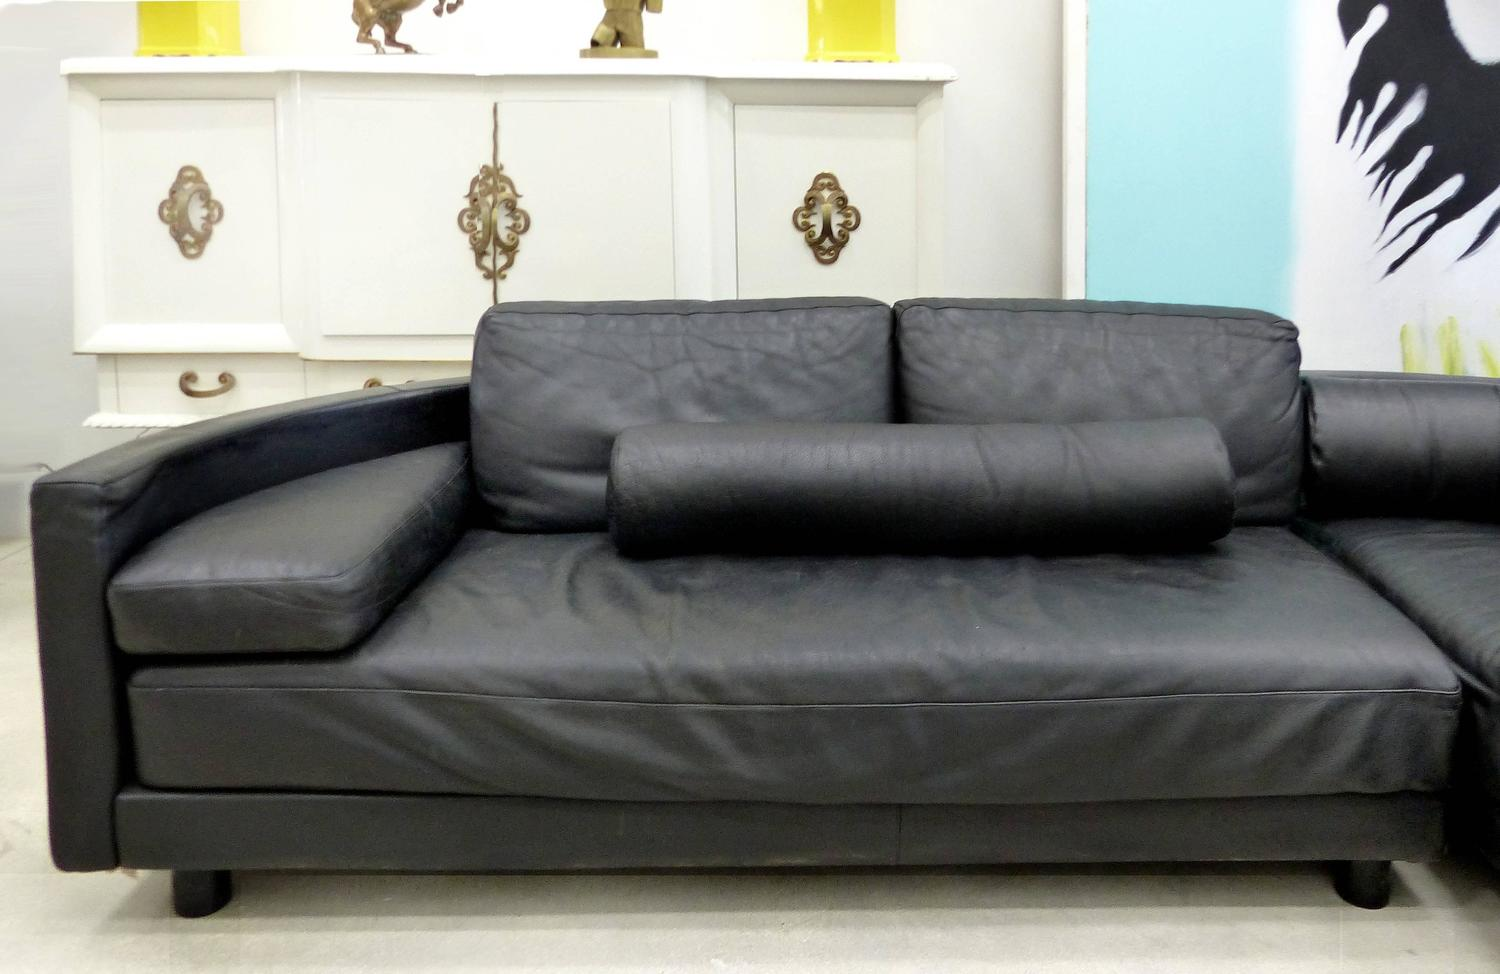 Guido Faleschini Sofa By I4 Mariani Italy For Sale At 1stdibs